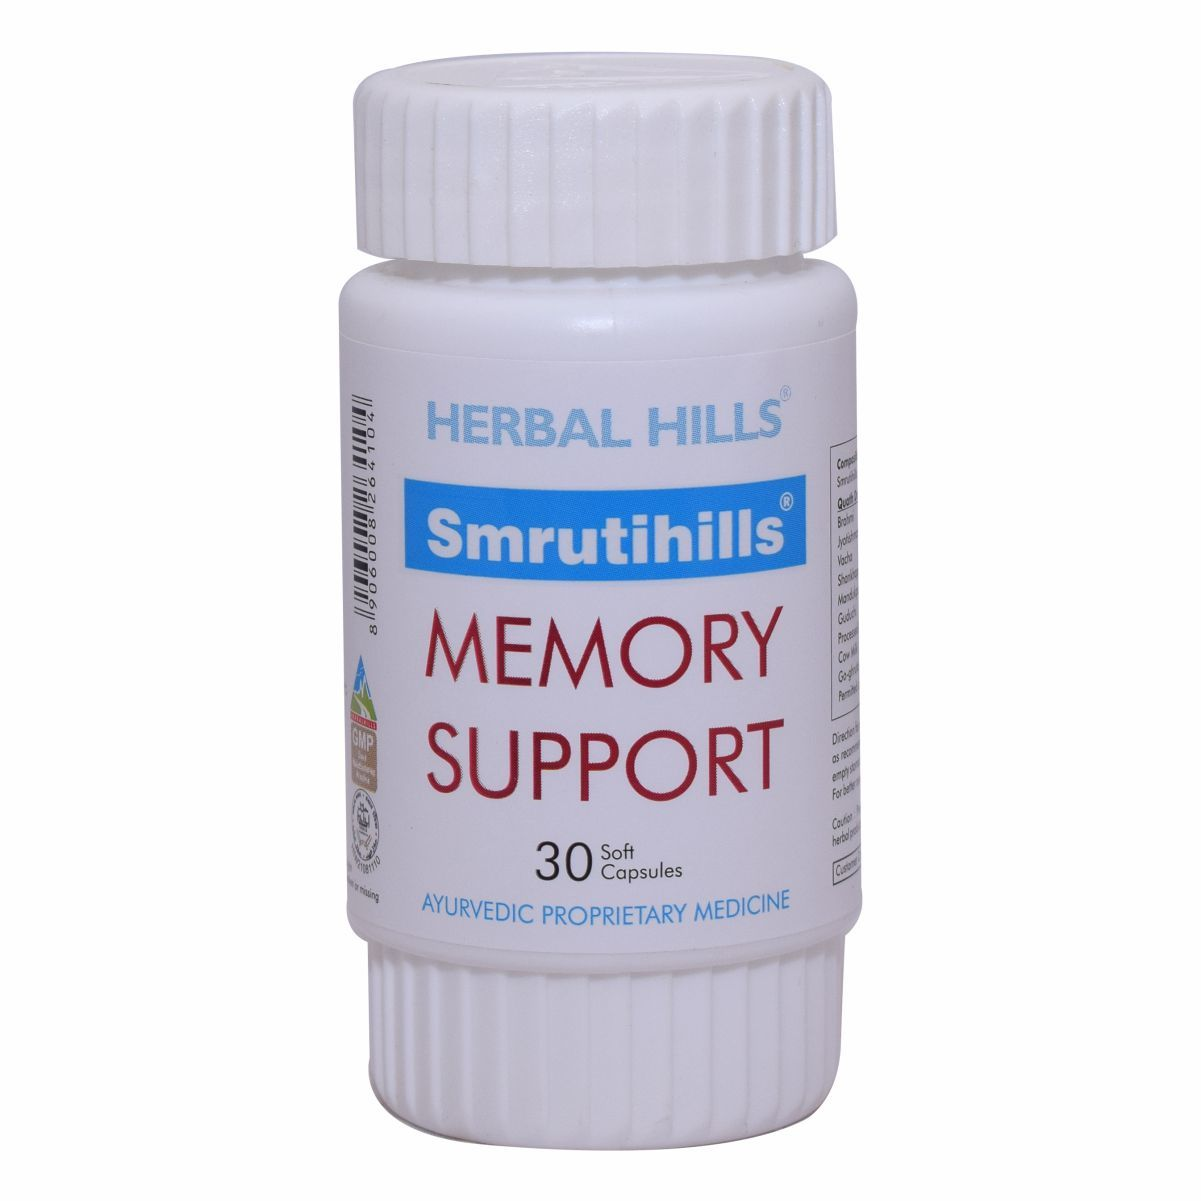 Ayurvedic Brain Tonic for Memory & Concentration - Smrutihills